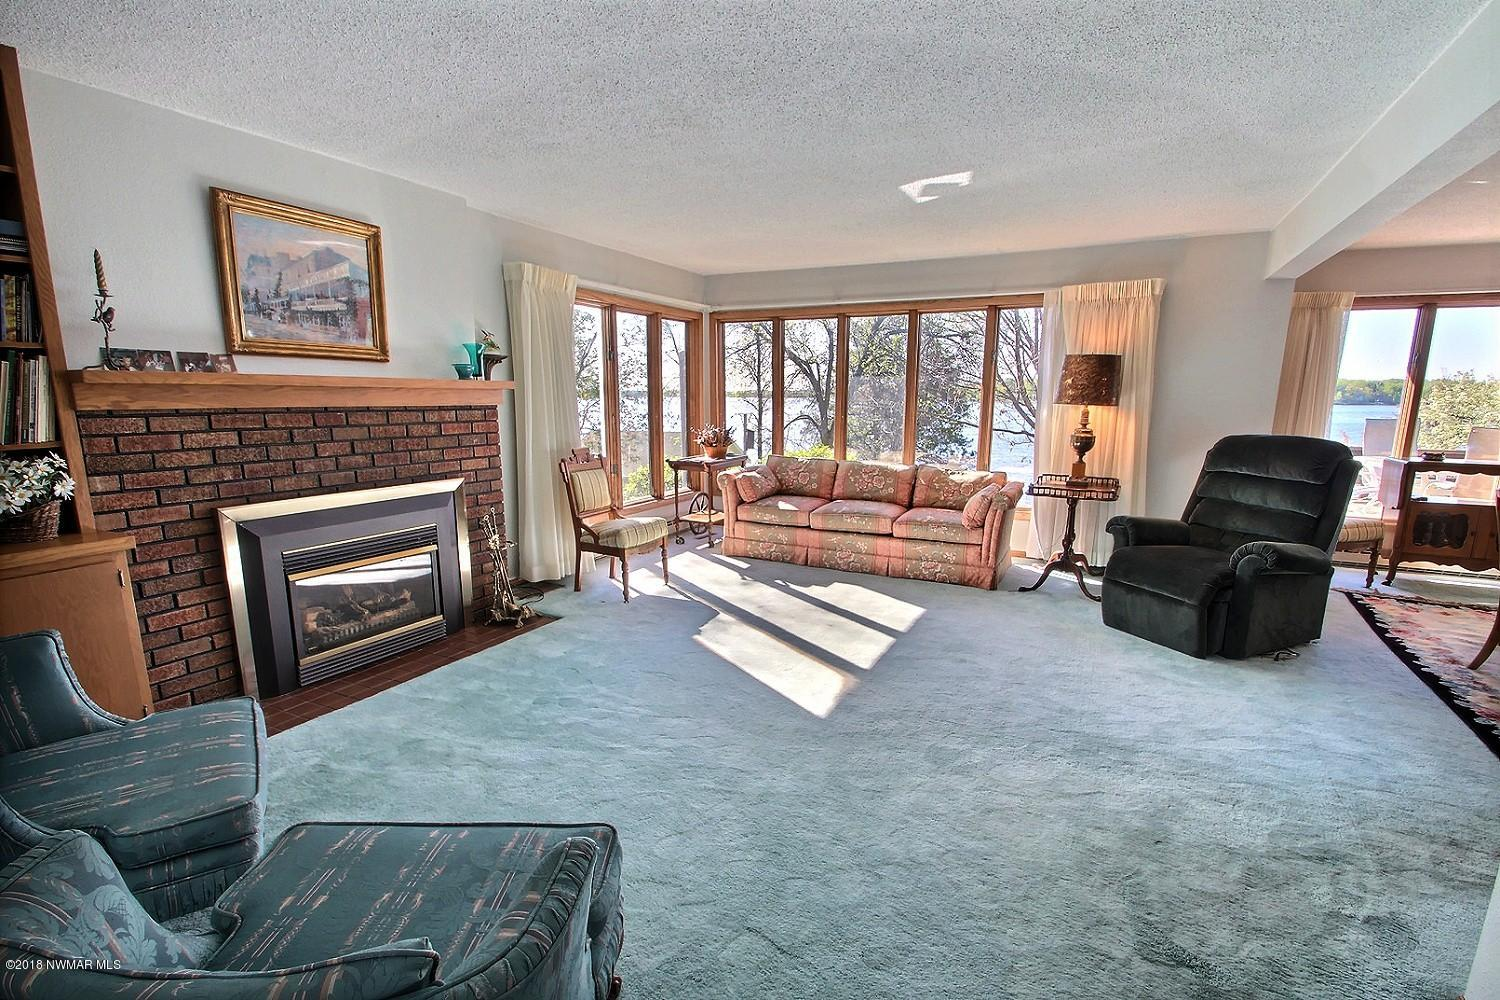 The living room is warmed by a gas burning fireplace that you can enjoy anytime of the year. There is more than enough room for you furniture.